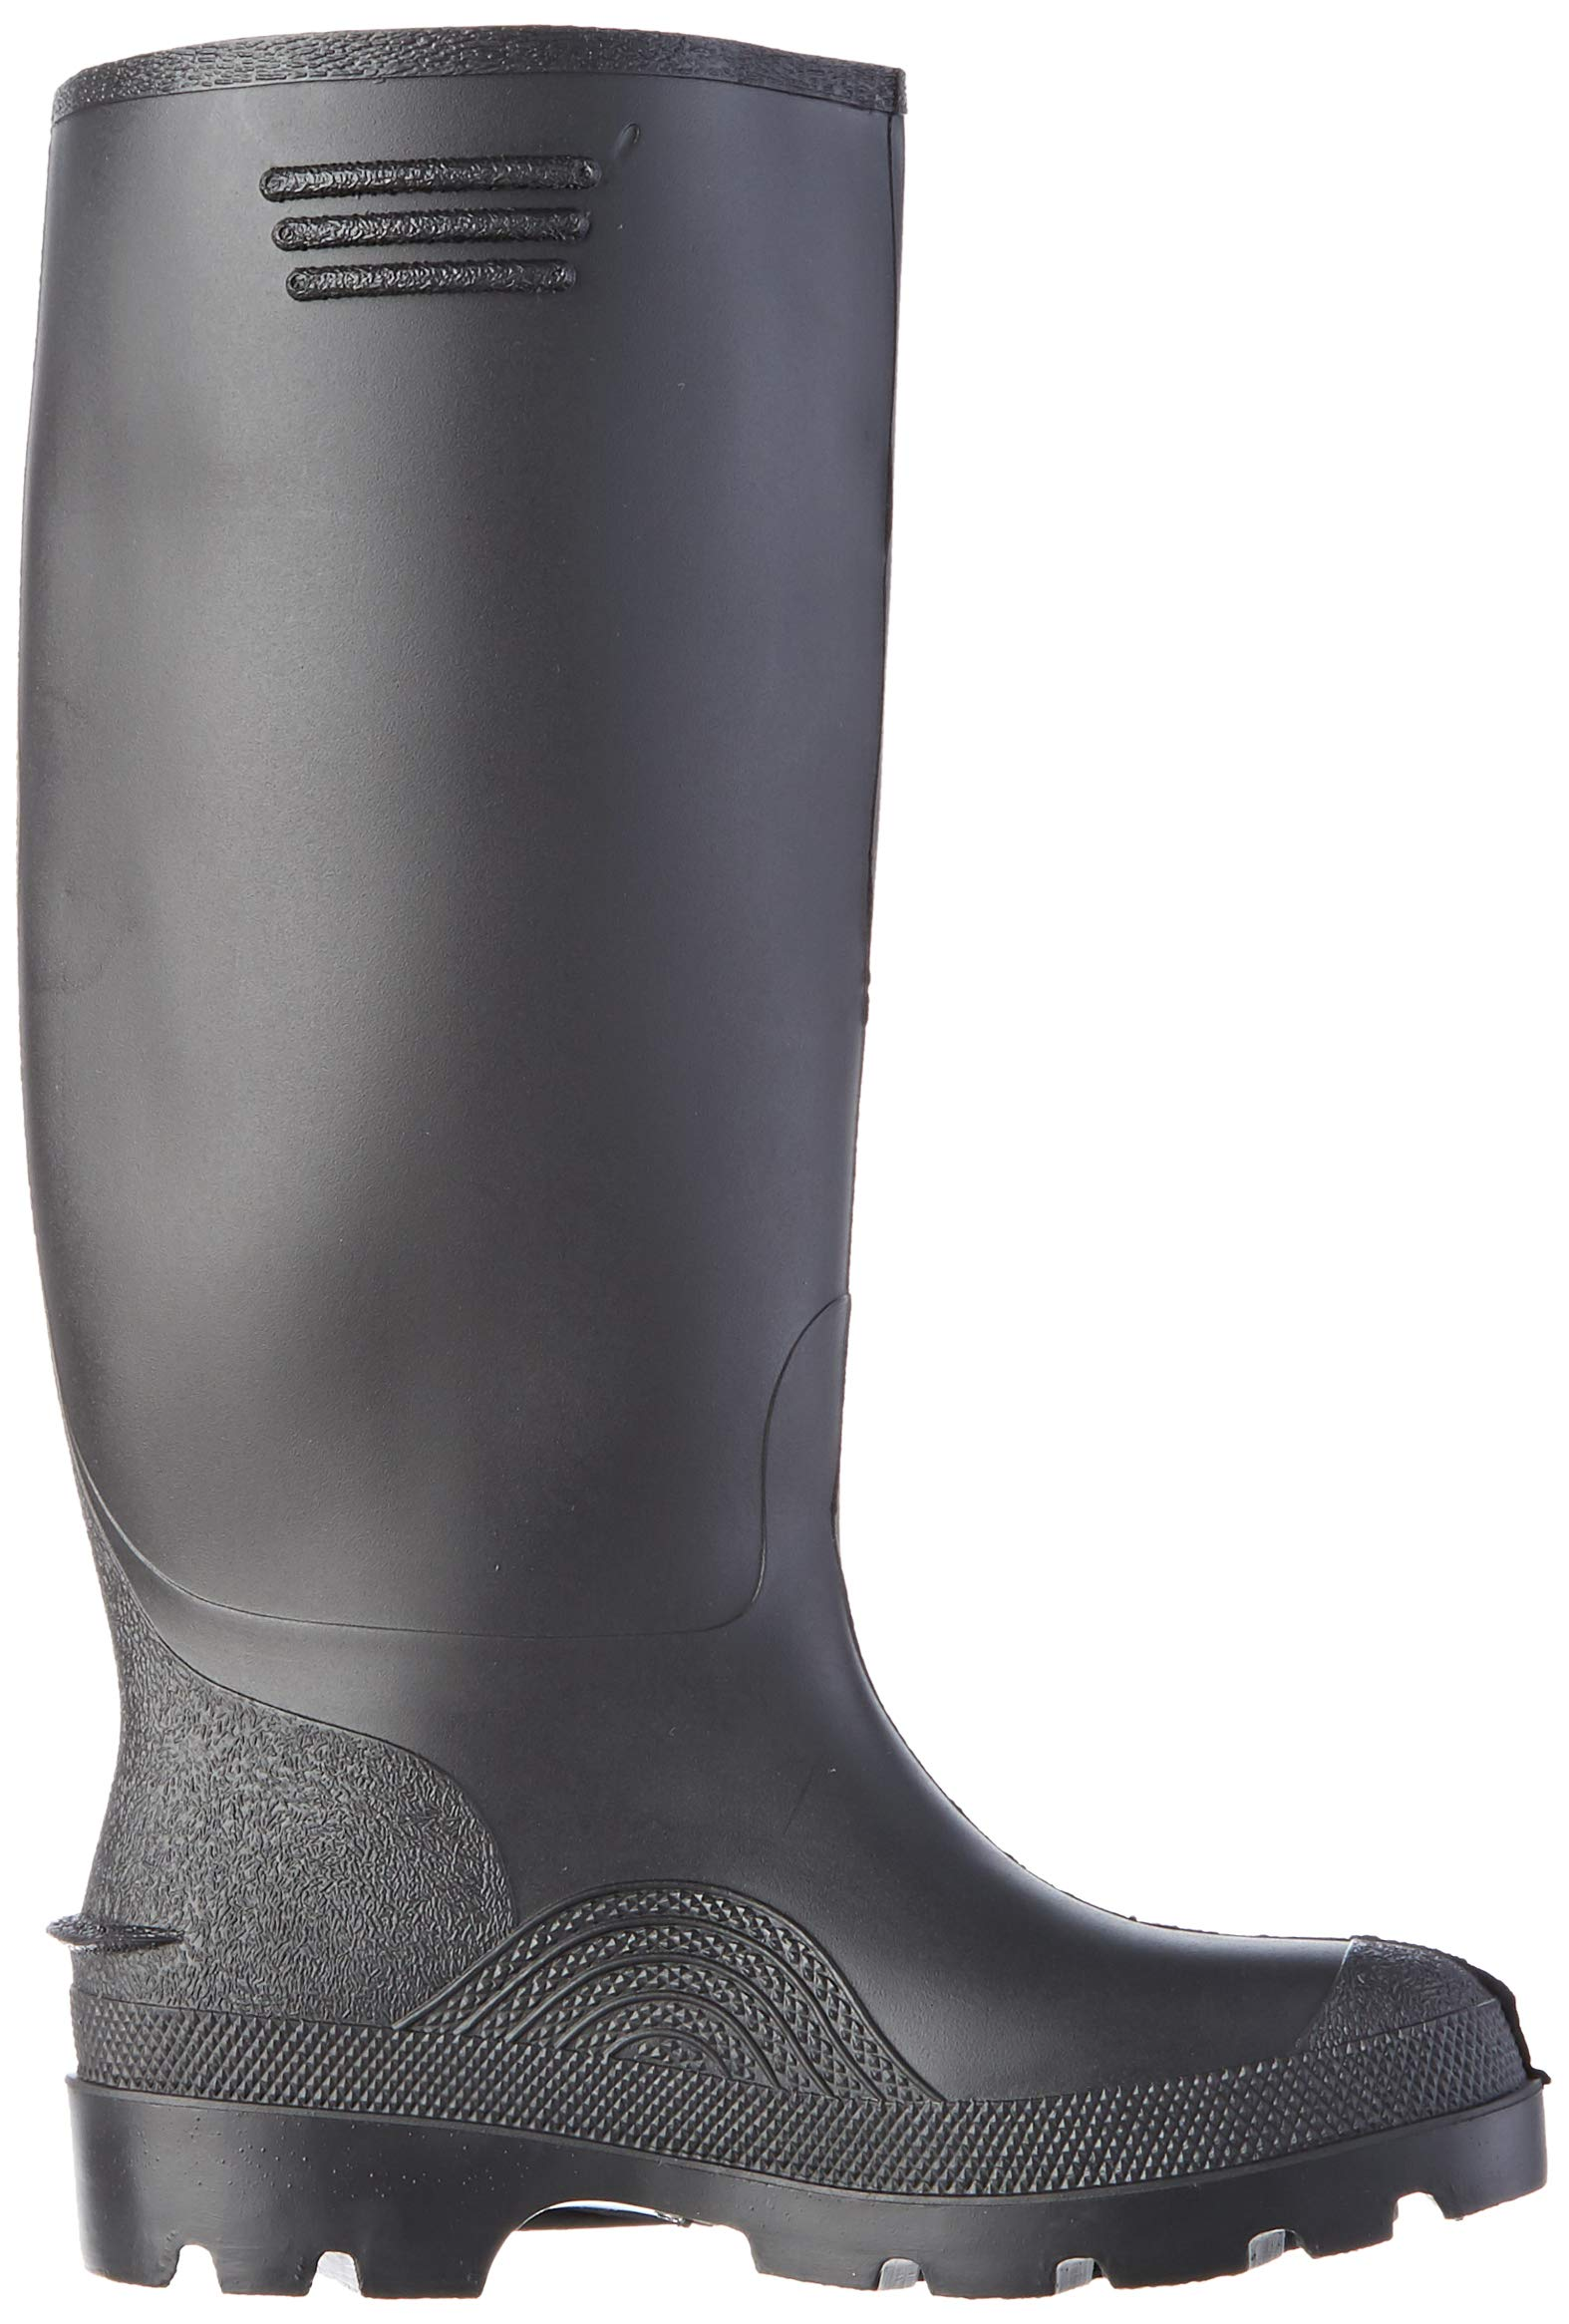 Dunlop Pricemastor PVC Welly / Mens Boots (10 UK) (Black) 6